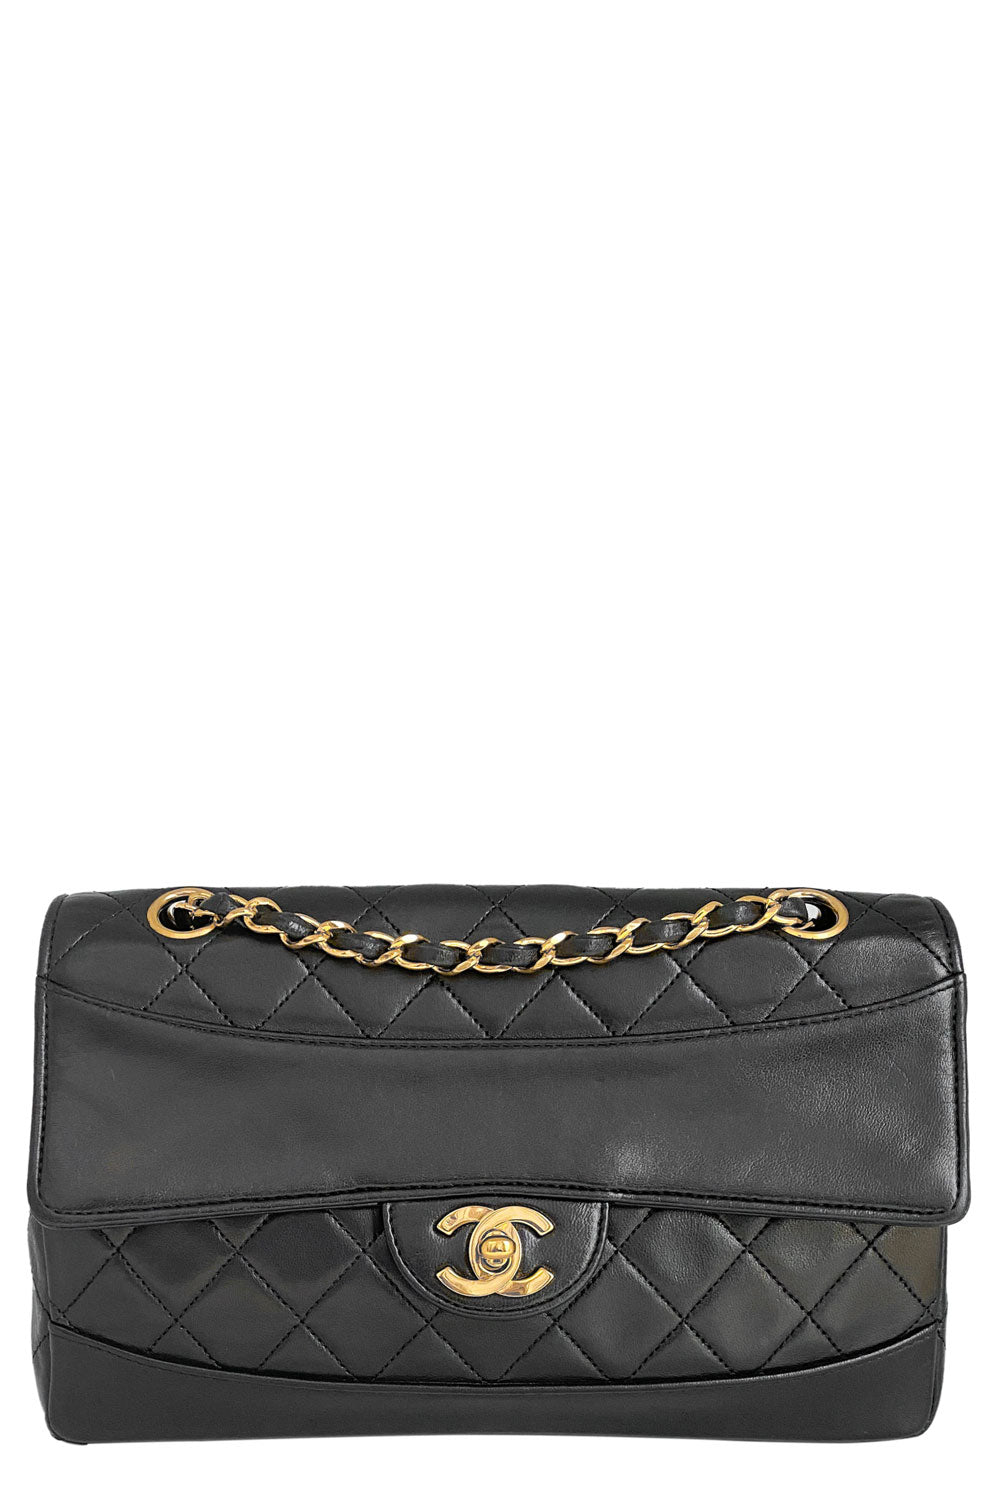 CHANEL Vintage Flap Bag Black Frontansicht